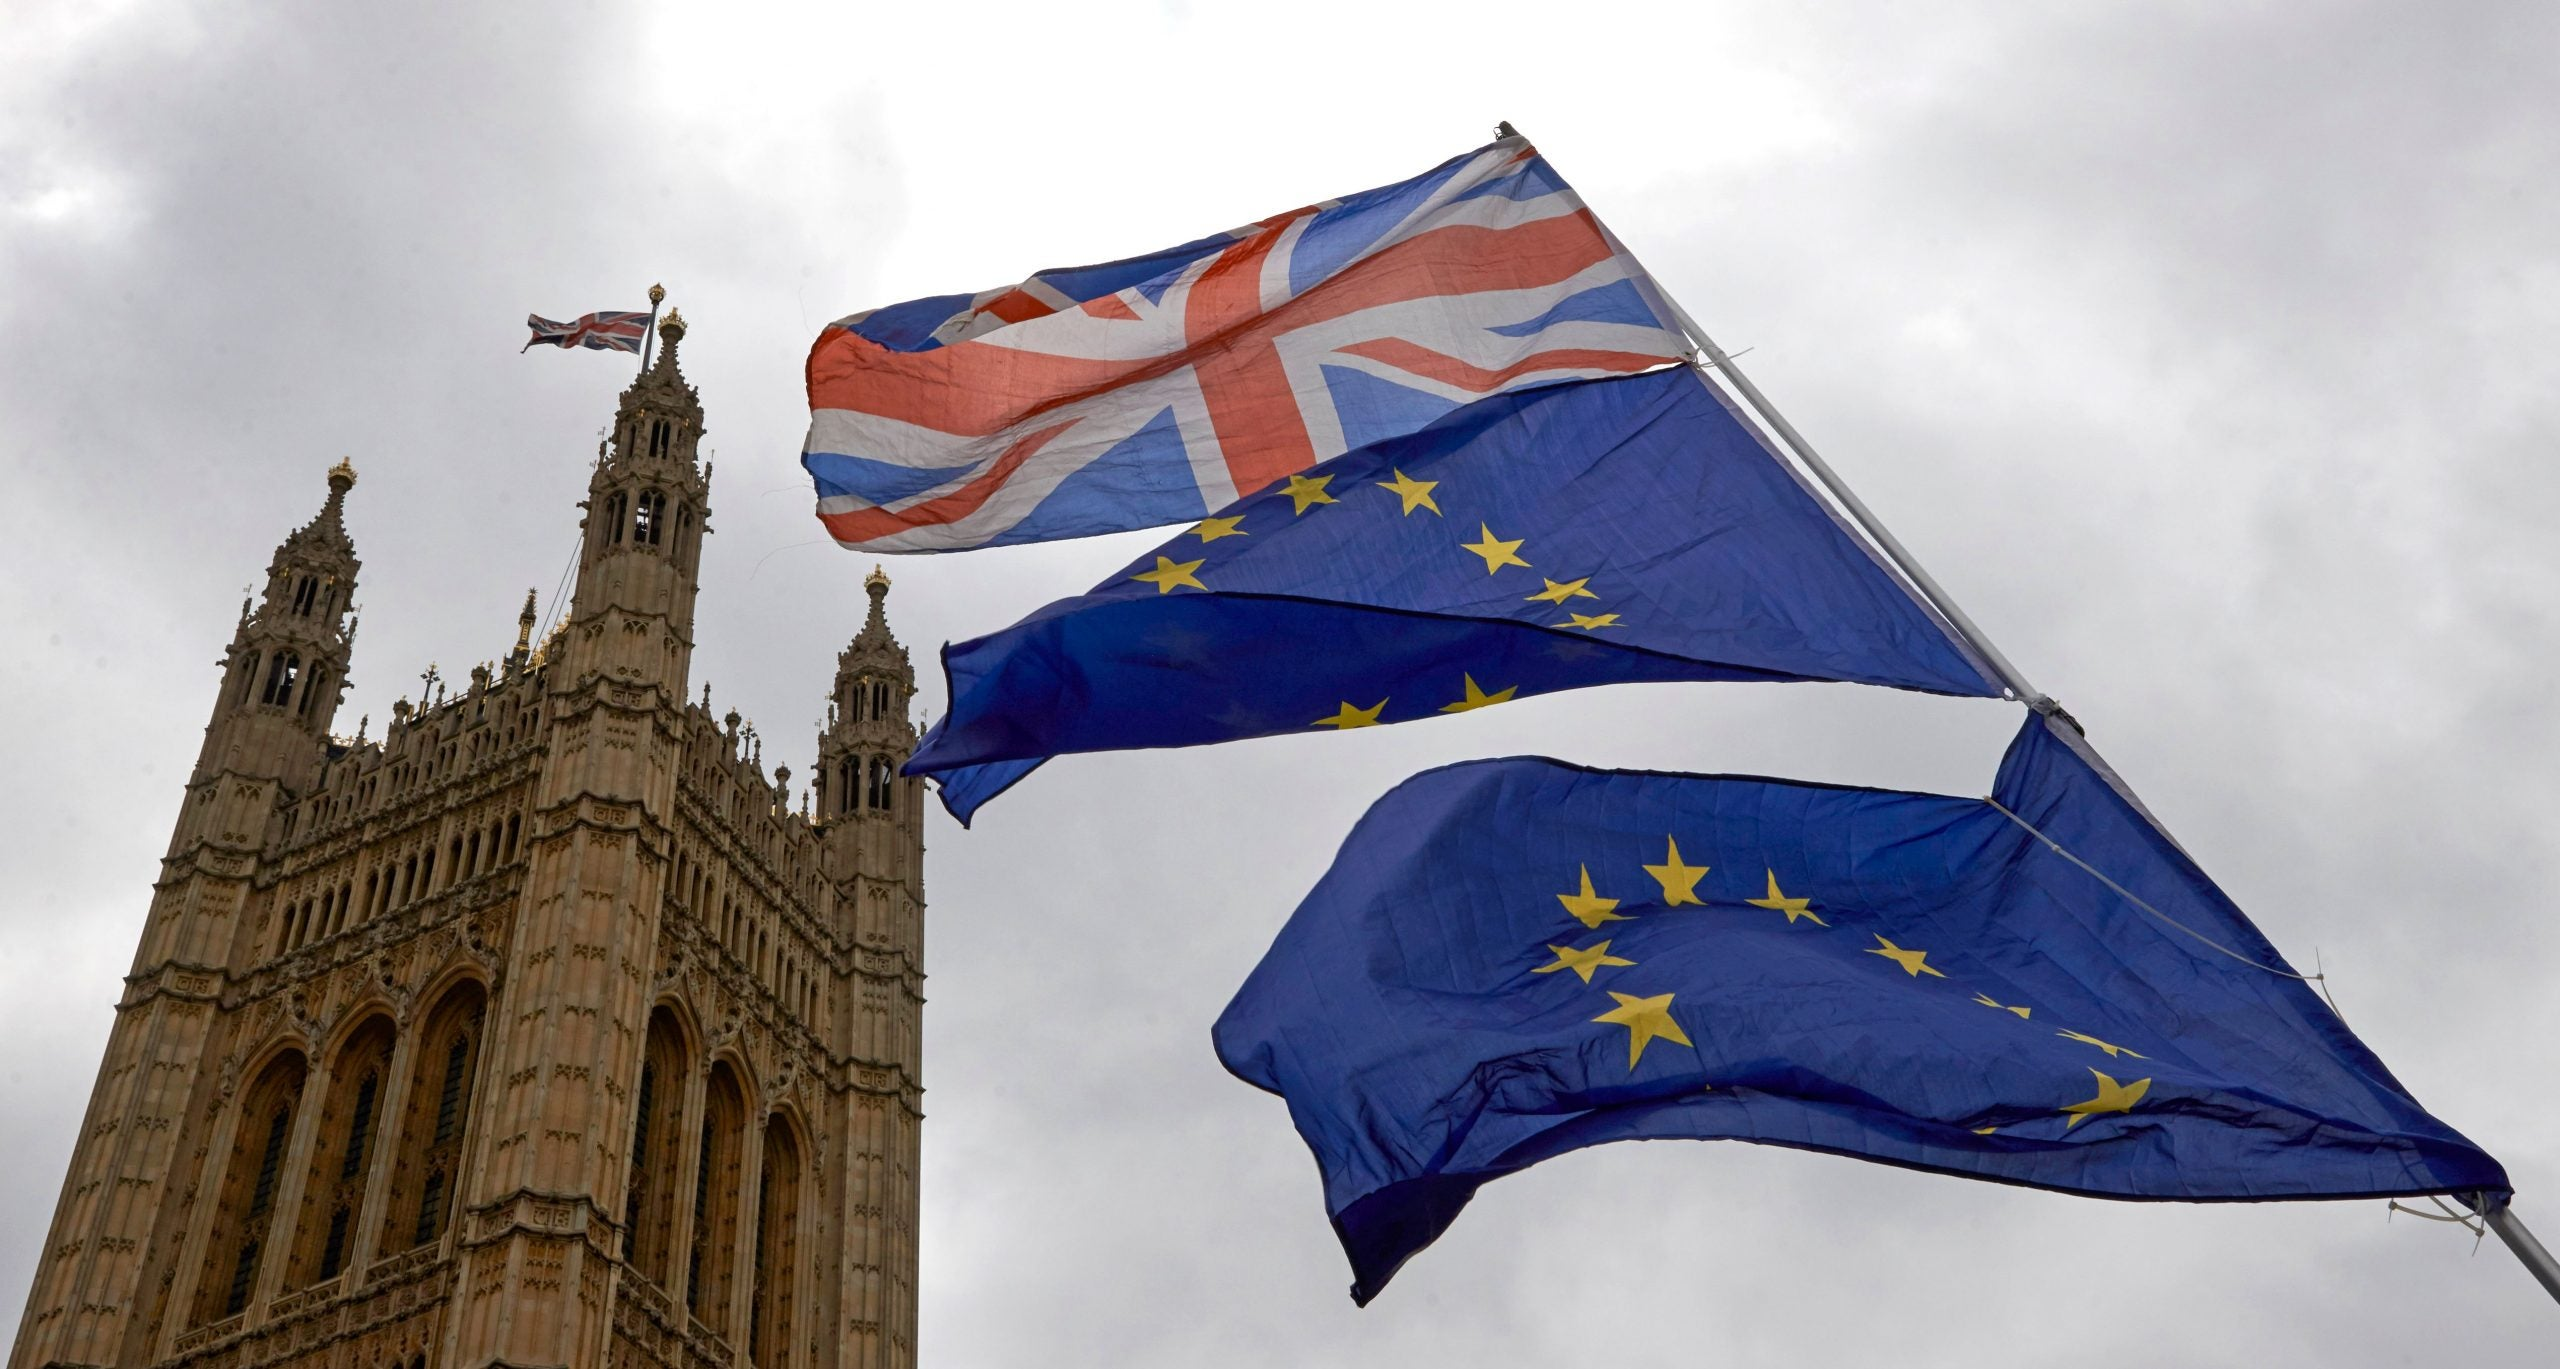 A no-deal Brexit would not make it easier for the UK to agree terms with the EU